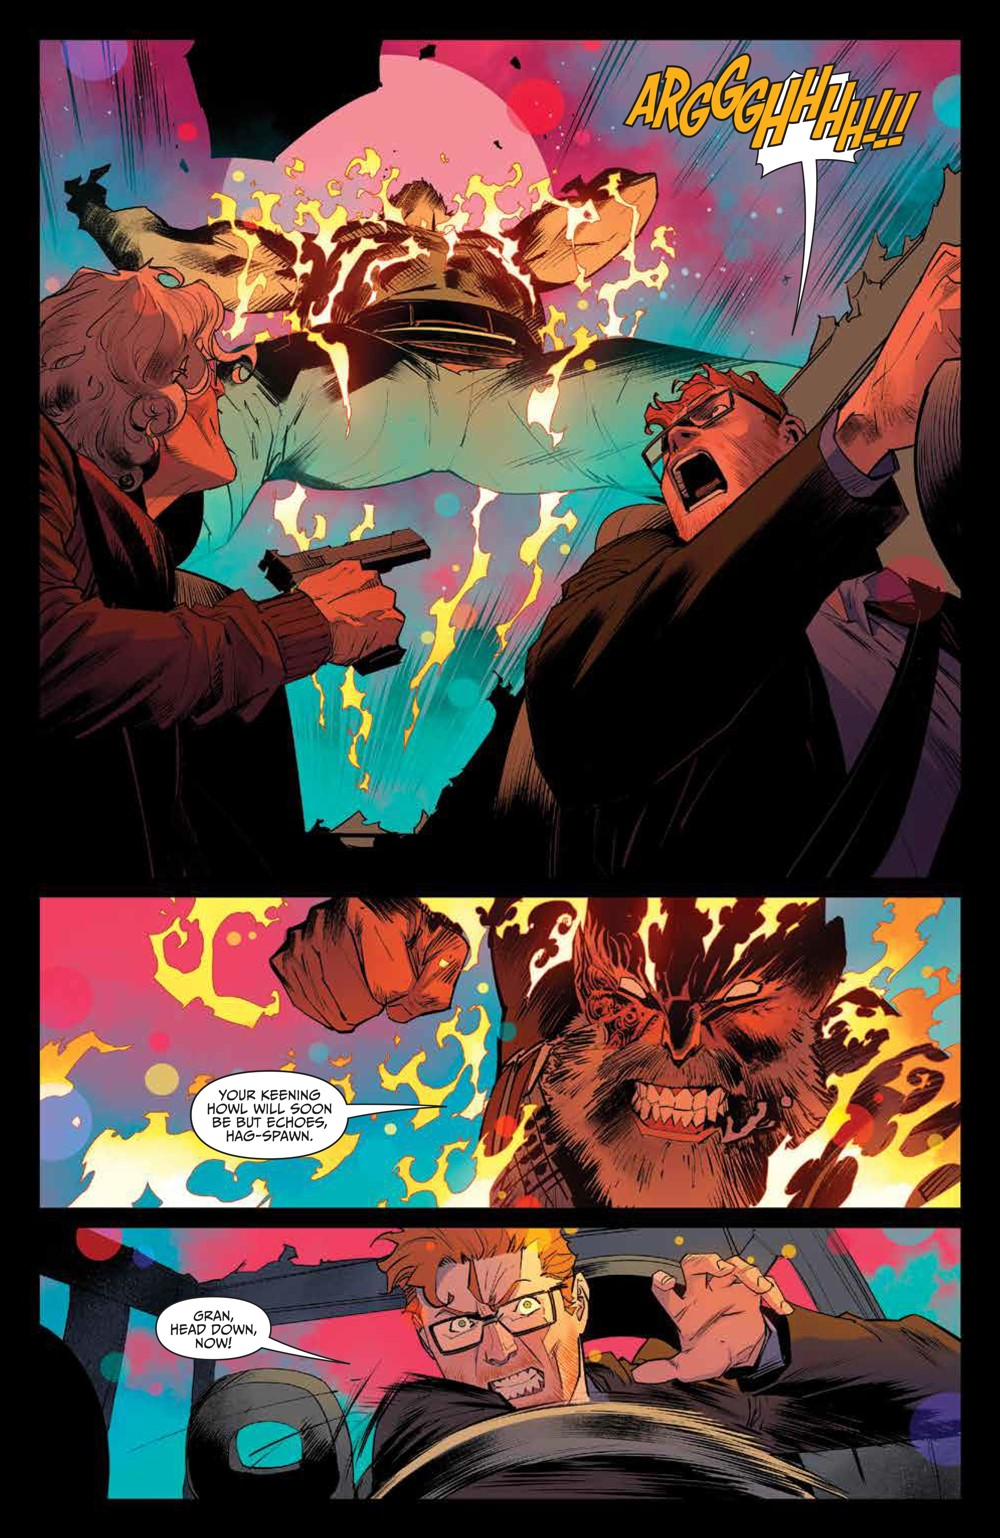 OnceFuture_009_PRESS_3 ComicList Previews: ONCE AND FUTURE #9